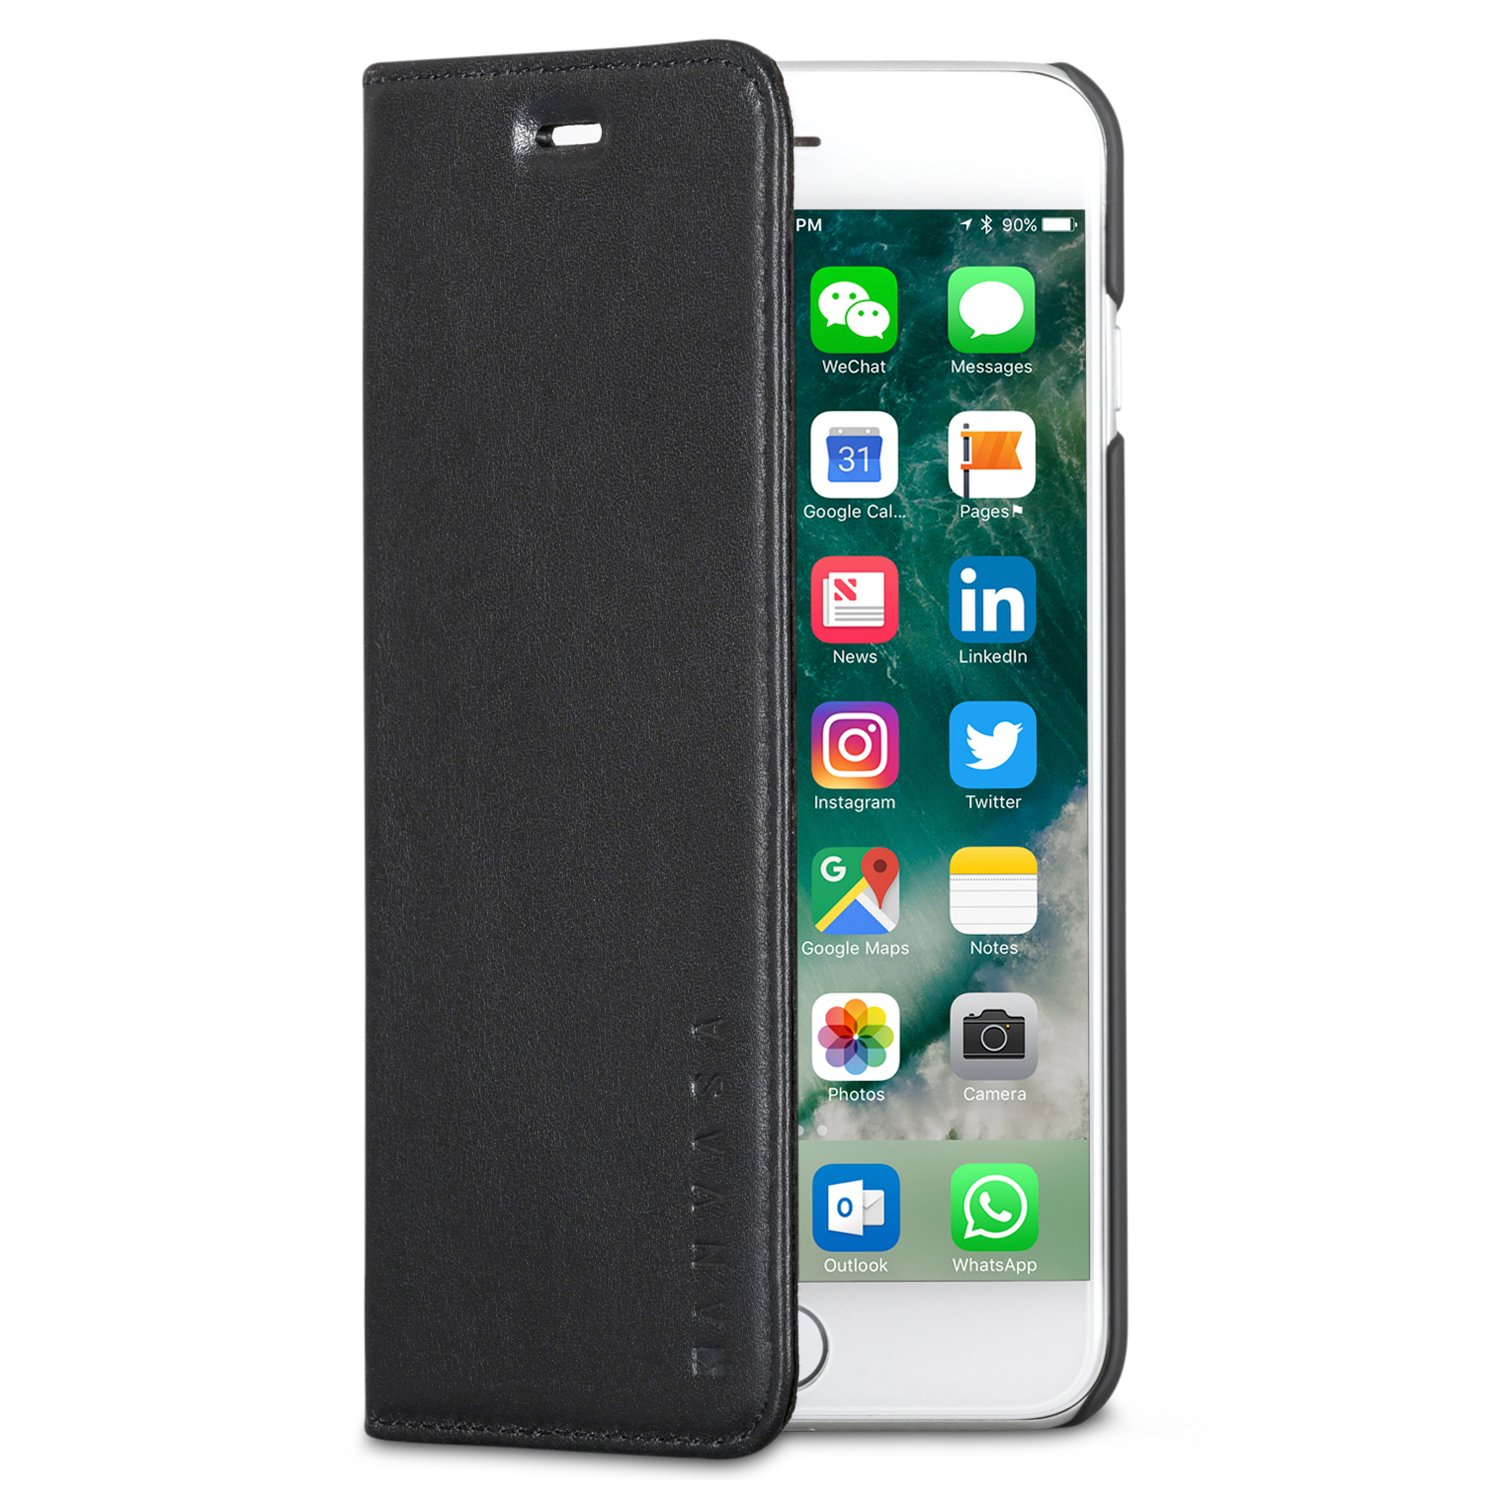 KANVASA Funda iPhone 8 Plus/Funda iPhone 7 Plus Tipo Libro Piel Negra Case Cover Carcasa Plegable Cartera Pro en Piel Auténtica Premium para Apple iPhone 8 ...